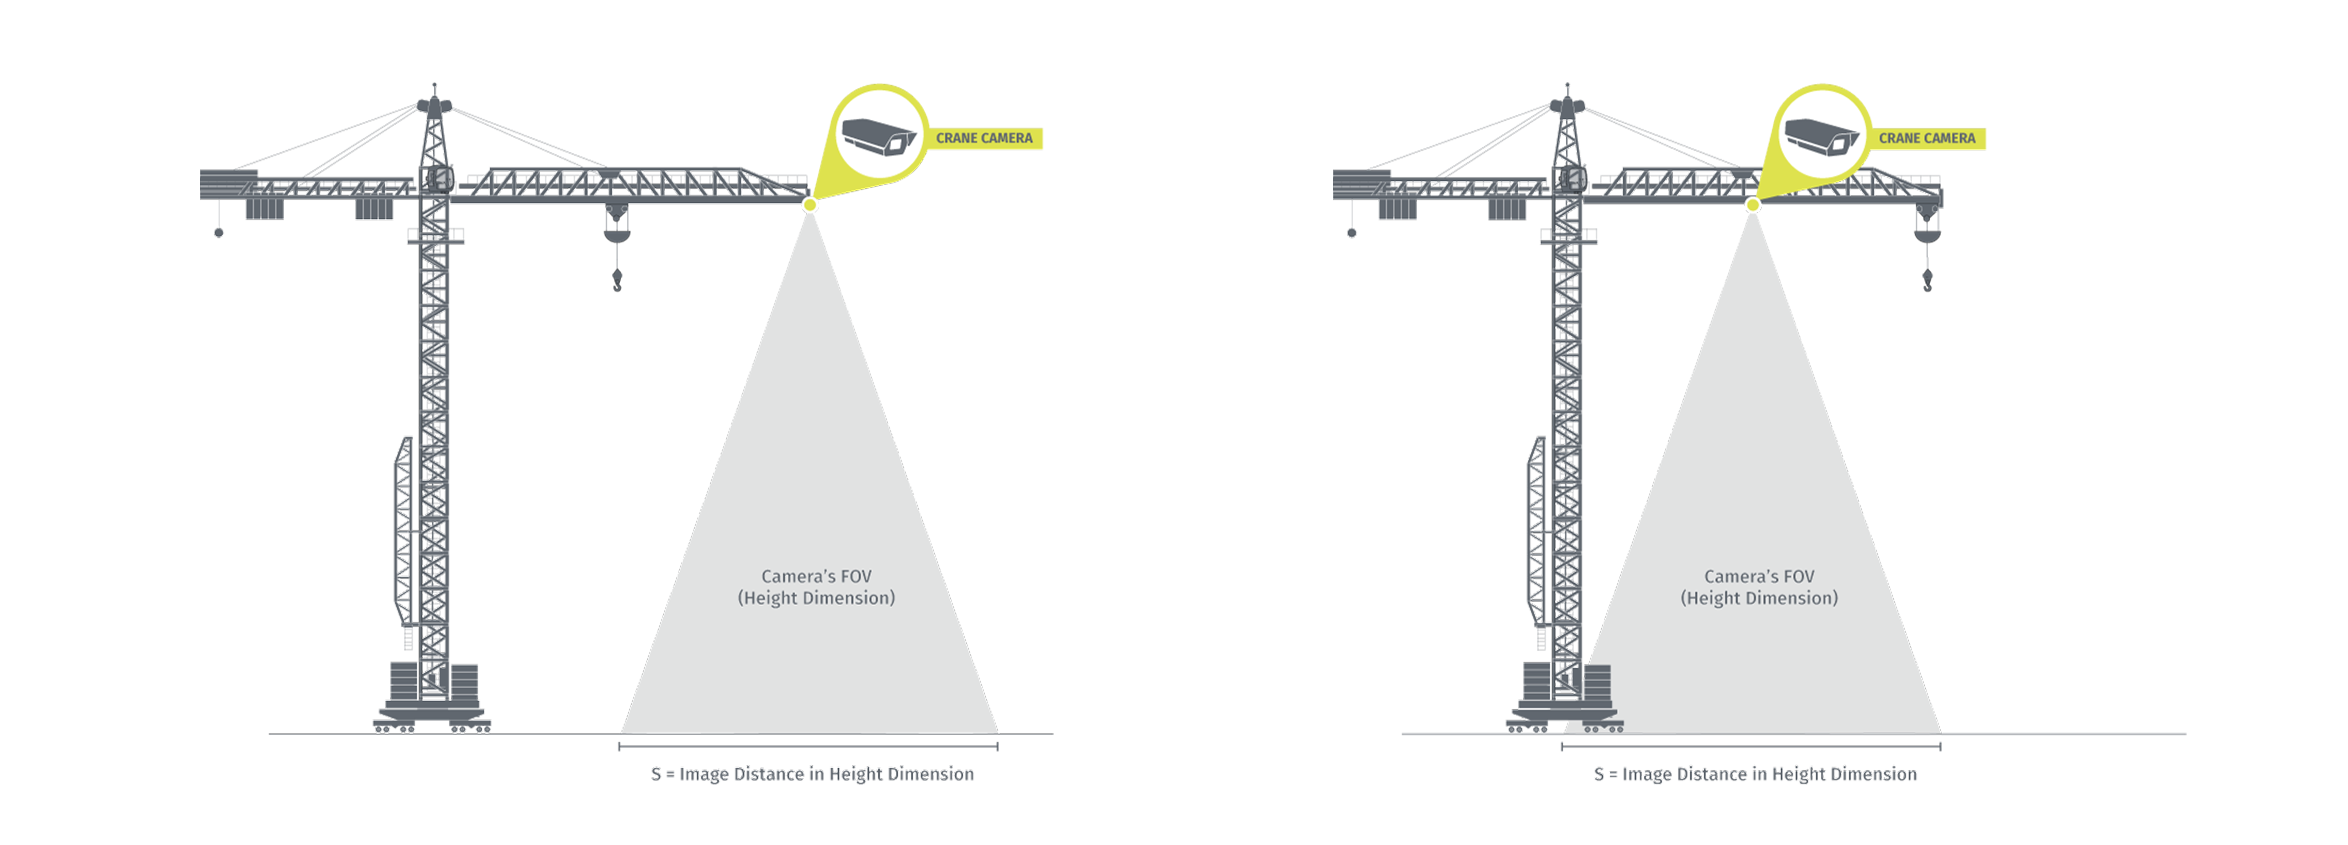 Diagram demonstrating the ideal placement of a Crane Camera at the tip of a crane's jib.